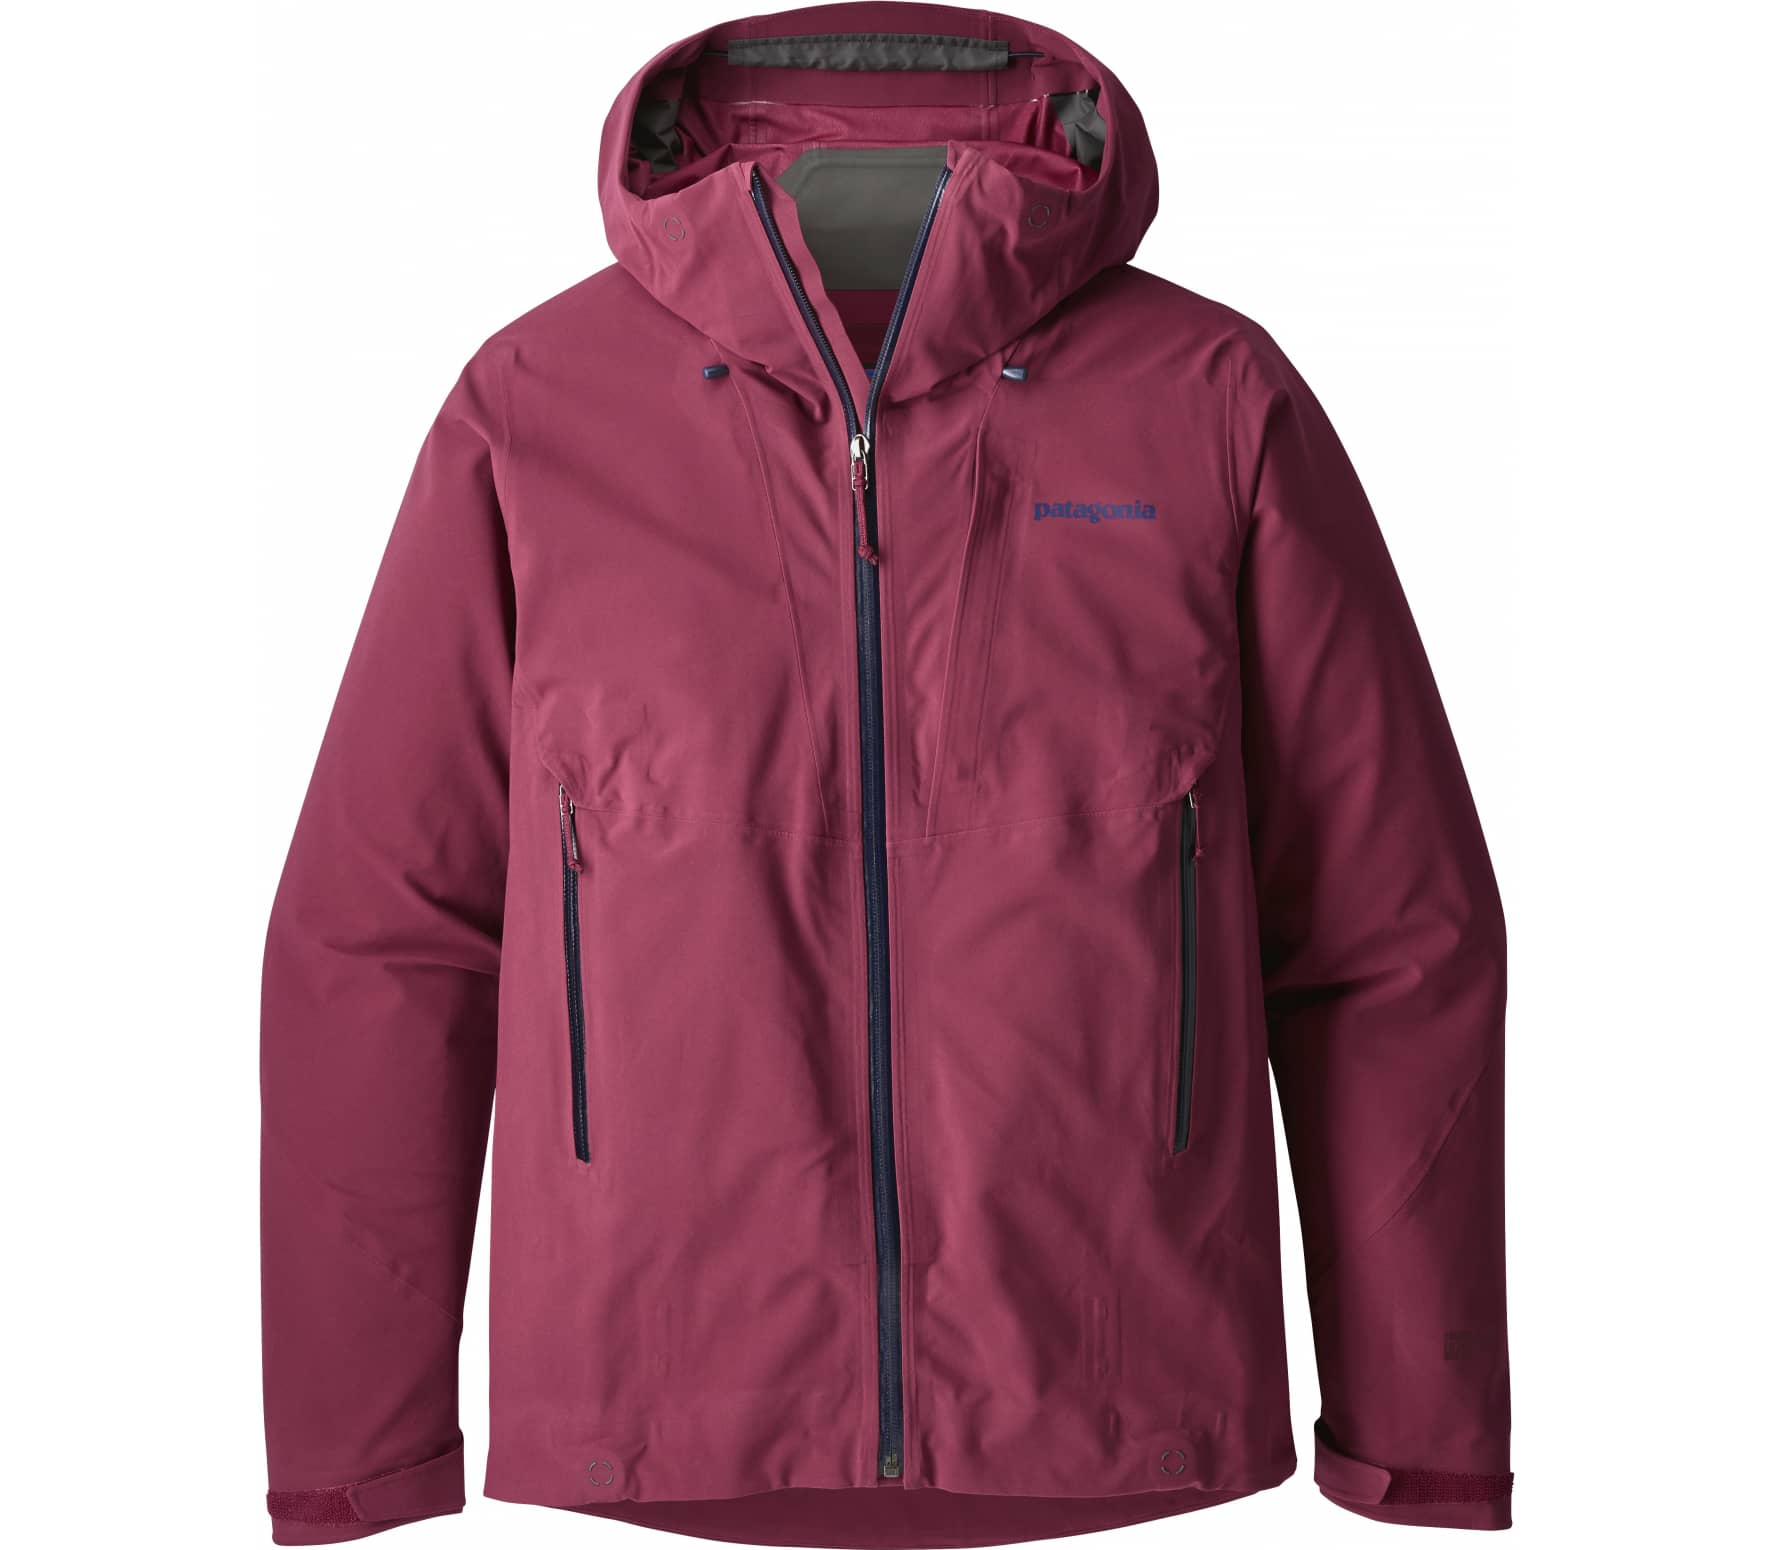 Patagonia - Galvanized women's outdoor jacket (red)